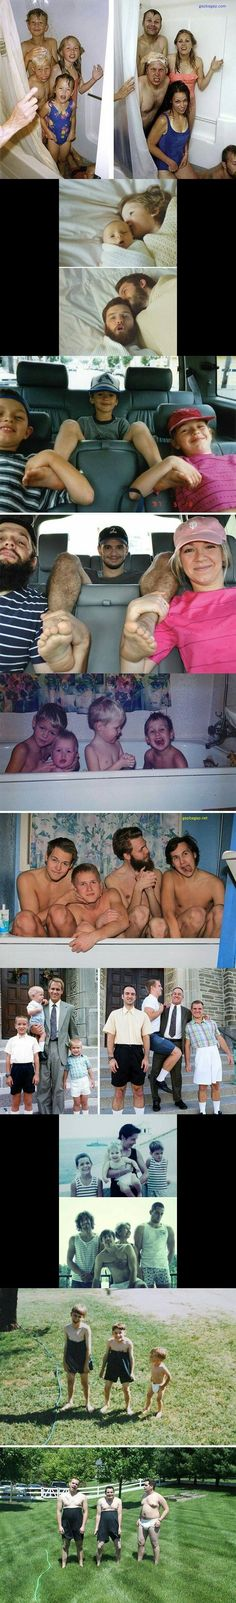 Top 14 Funniest Pictures Of Childhood vs. Adulthood – Gap Ba Gap